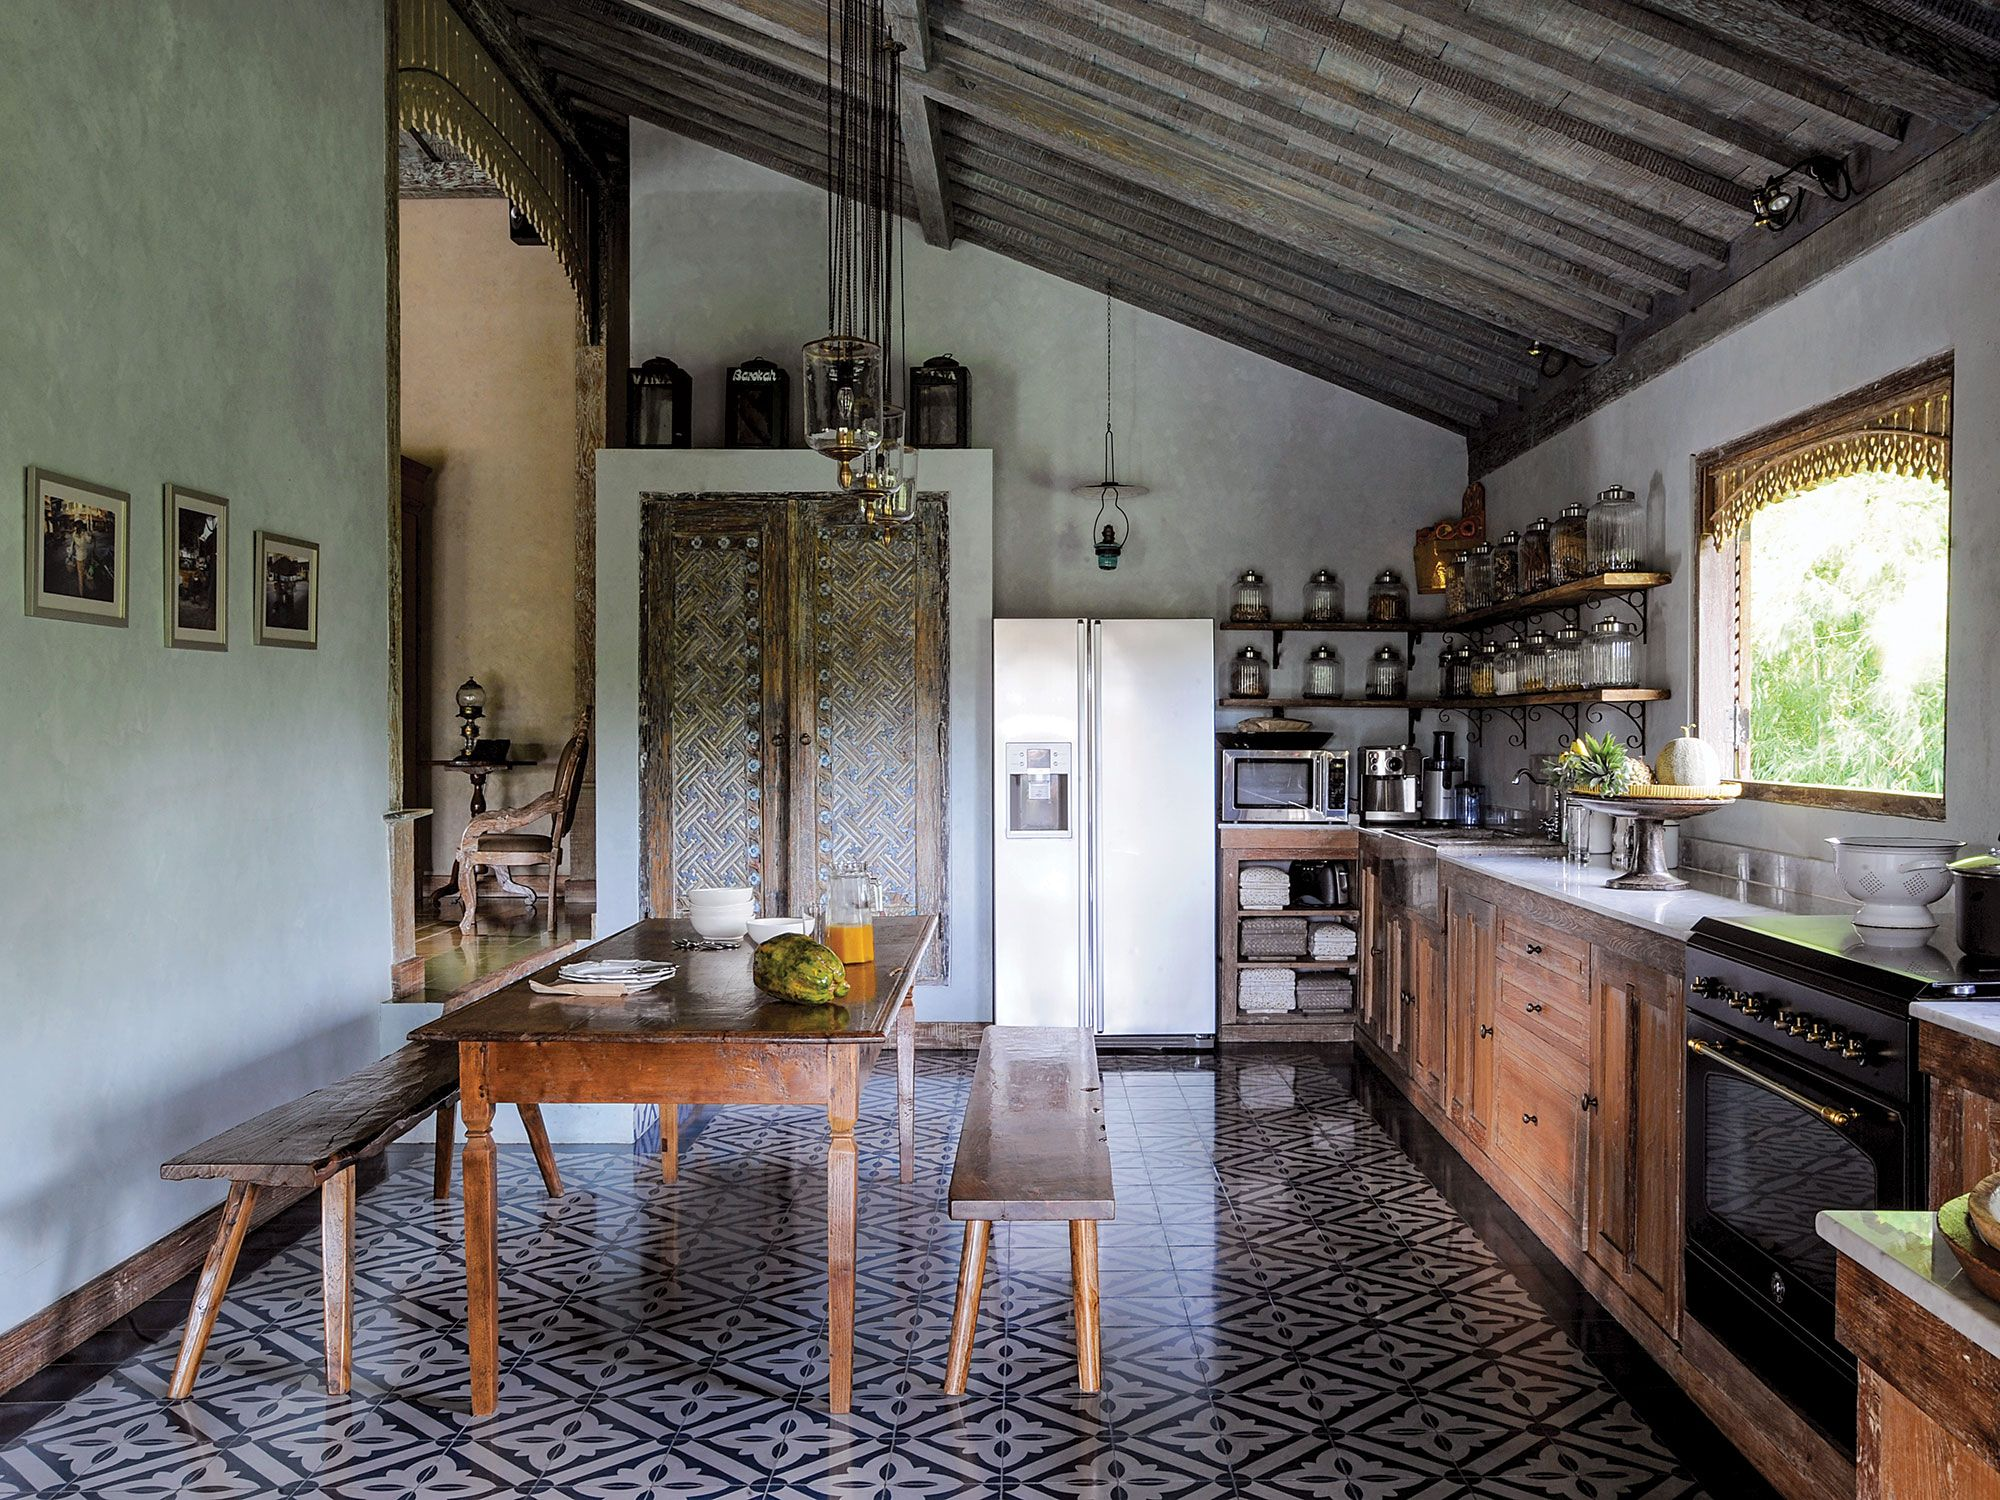 colonial kitchen design Bali This kitchen takes design inspiration from Dutch colonial